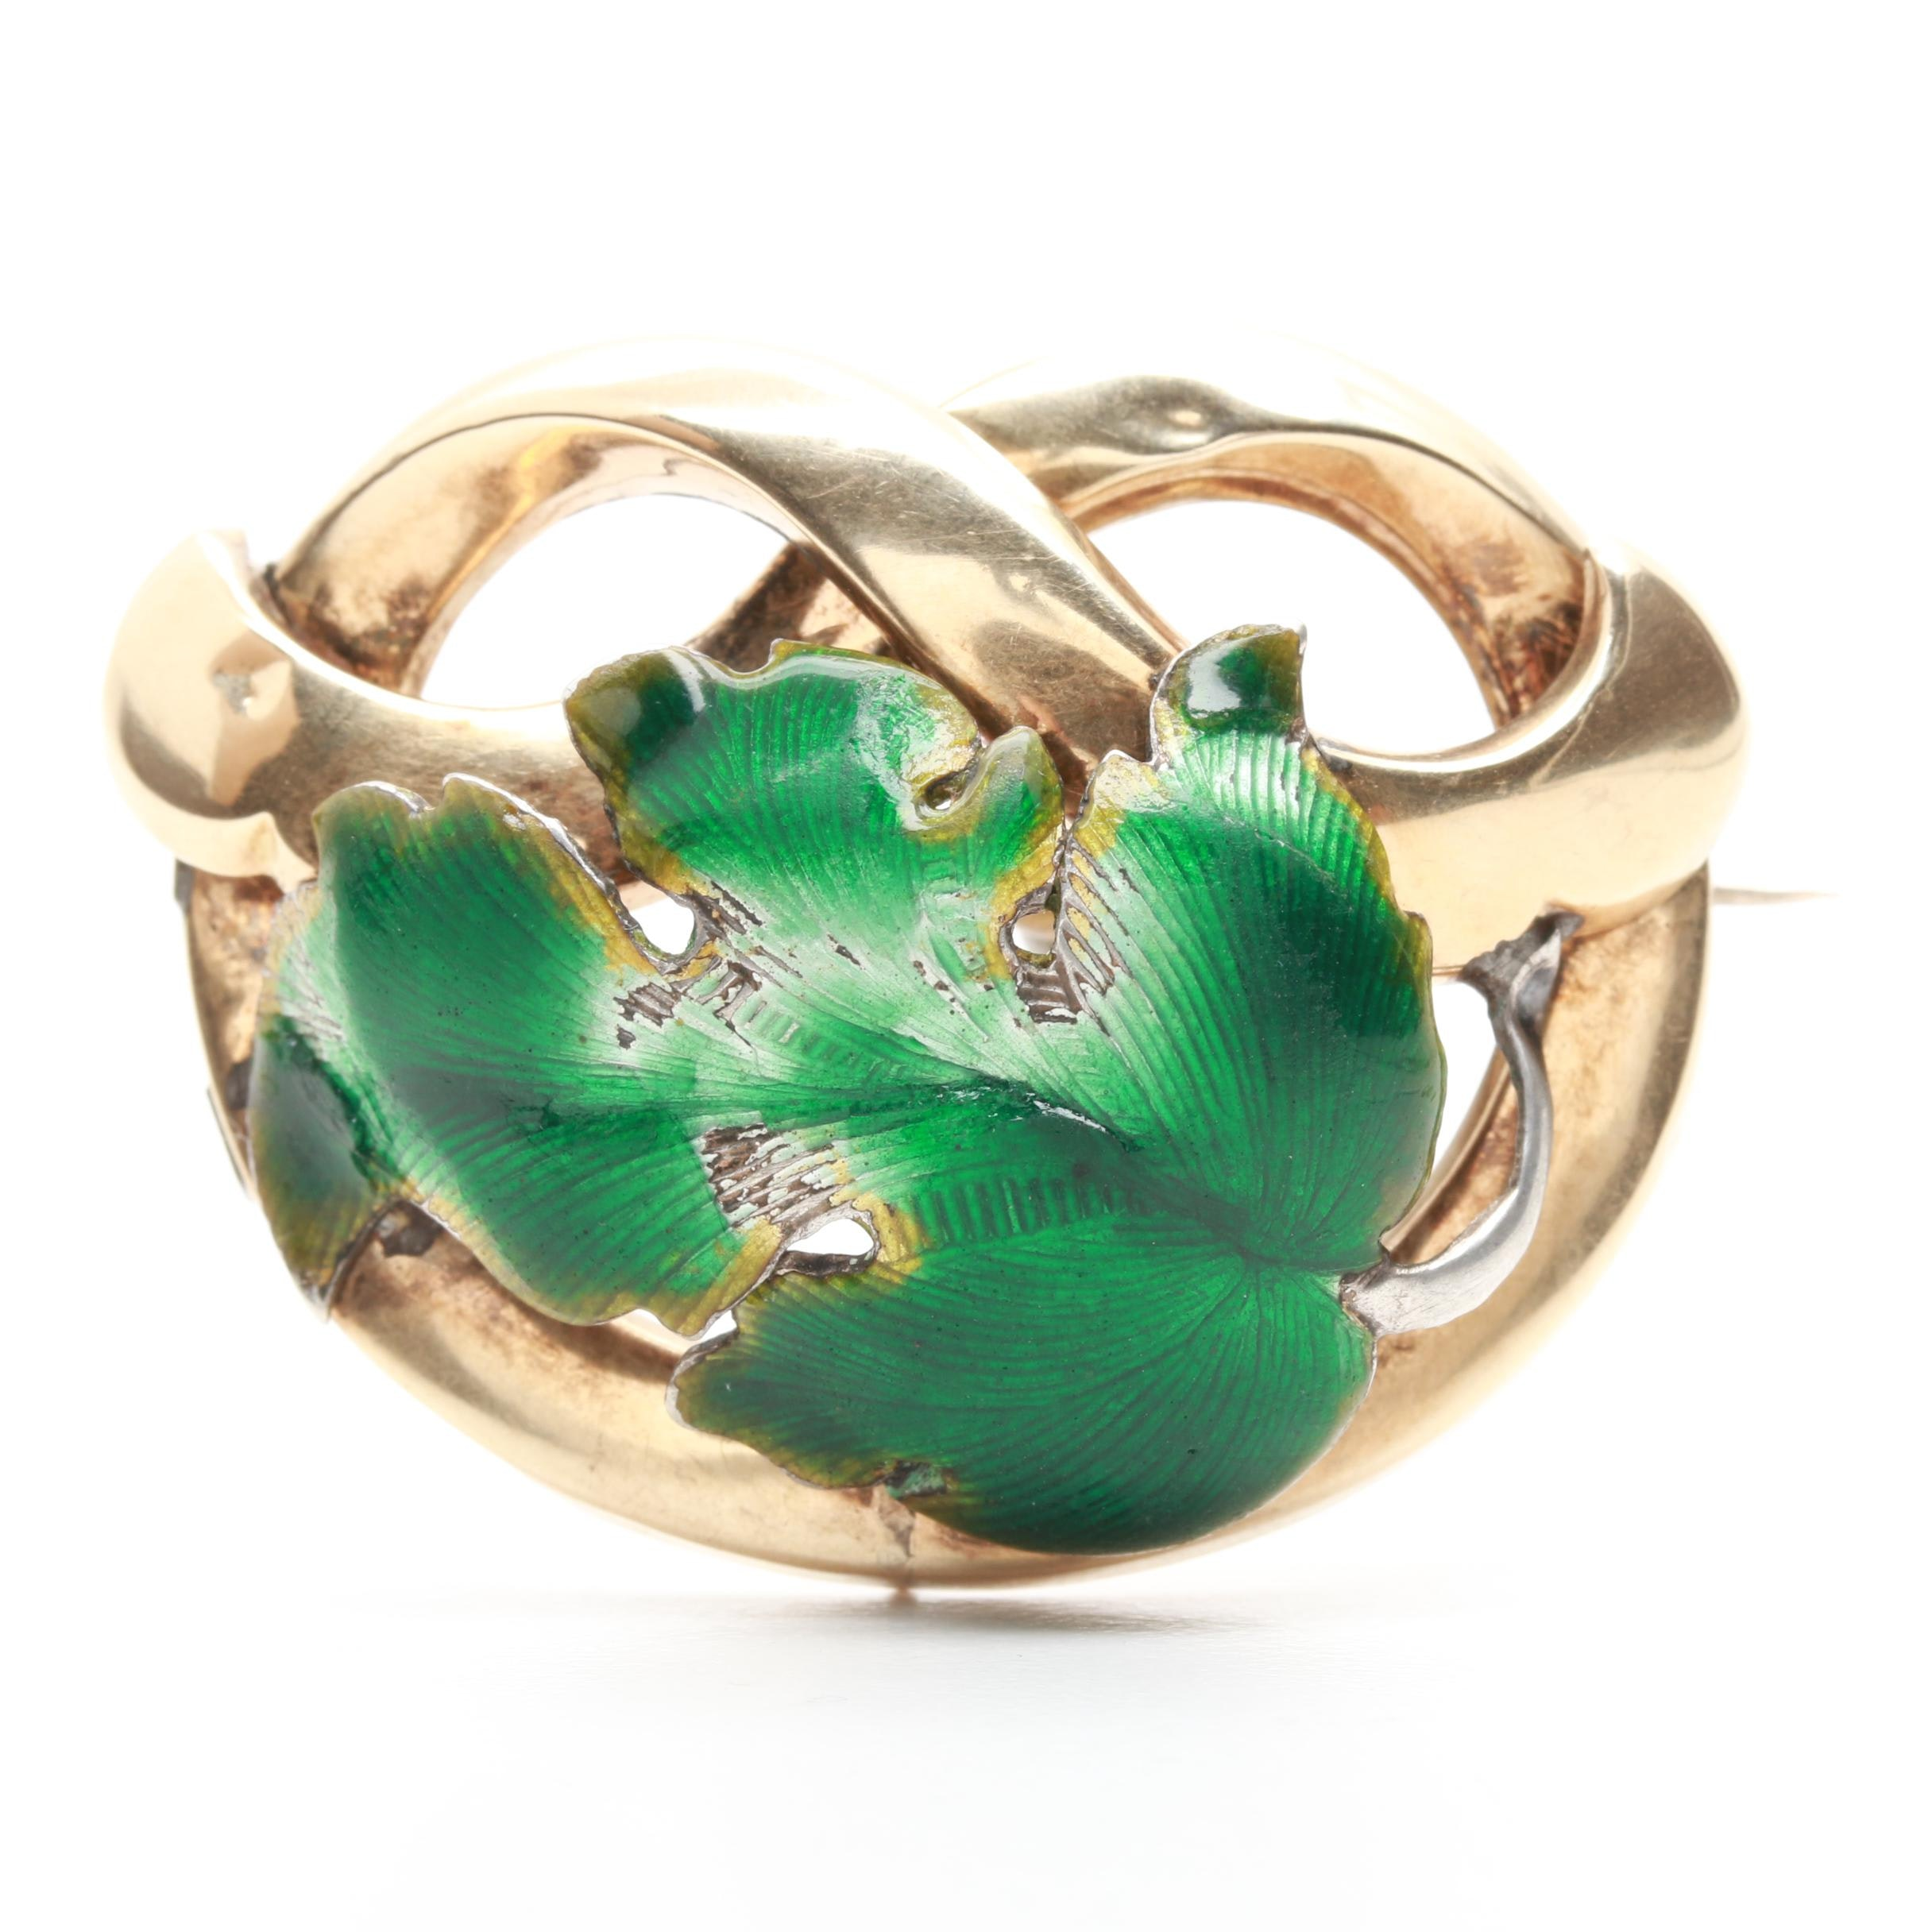 10K Yellow Gold and Sterling Silver Enamel Converter Brooch